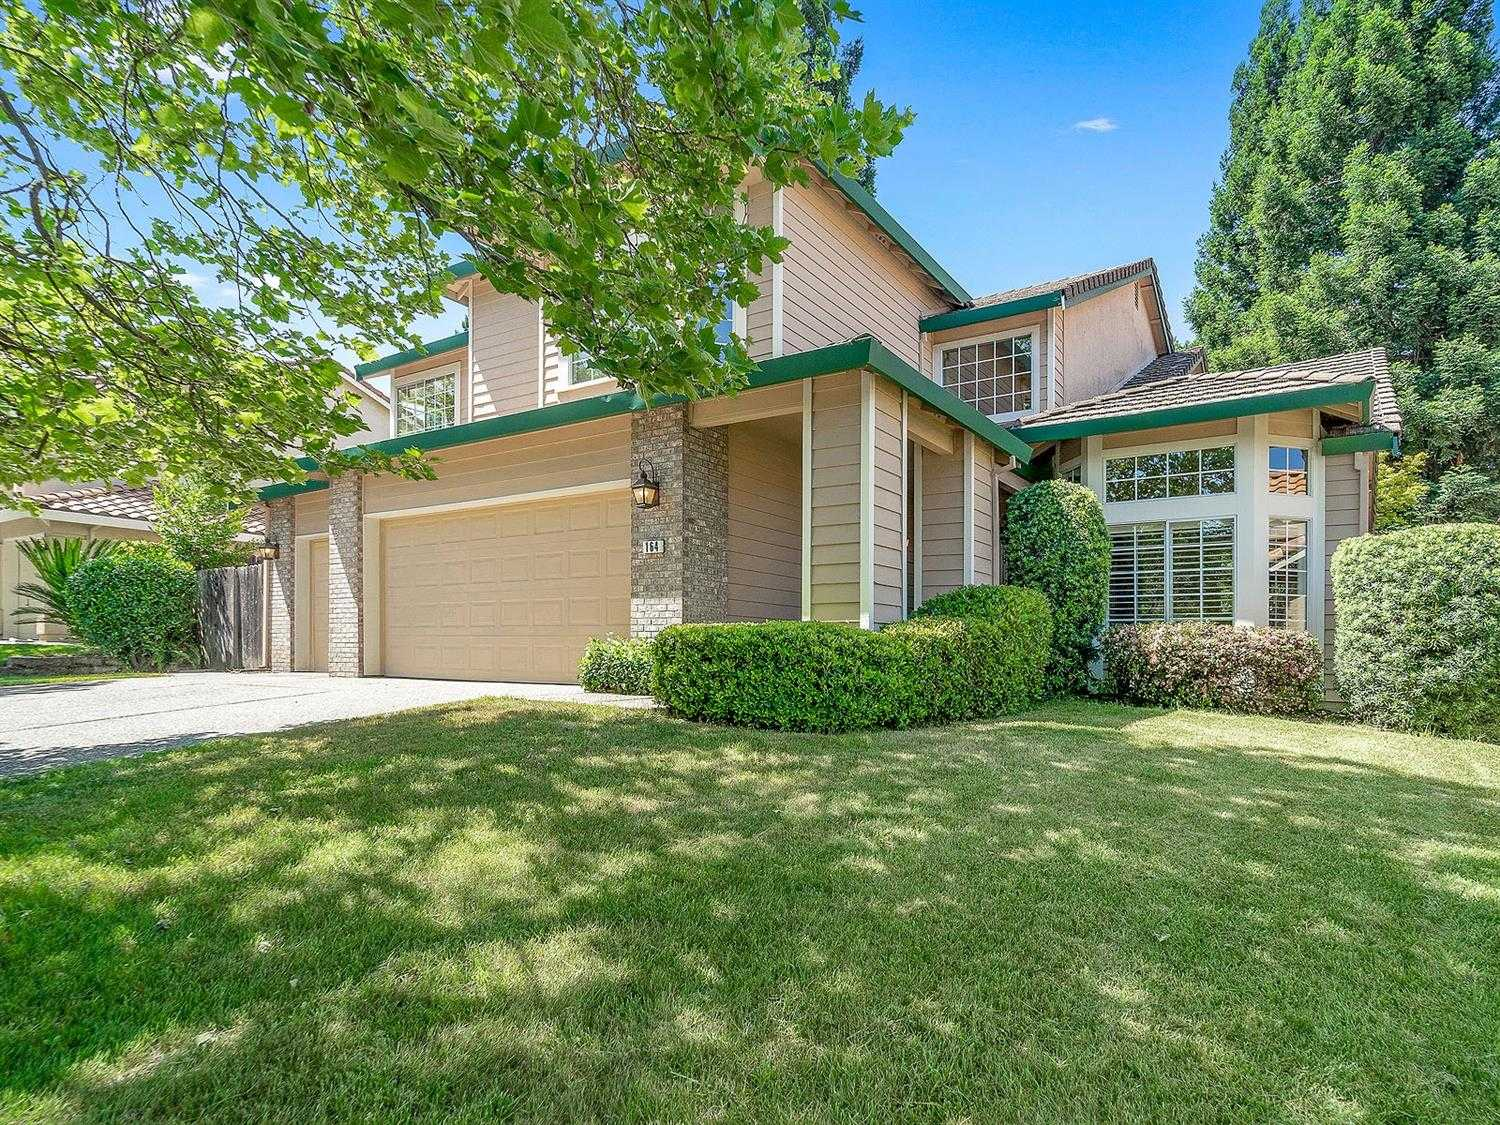 $610,000 - 5Br/3Ba -  for Sale in Natoma Station, Folsom